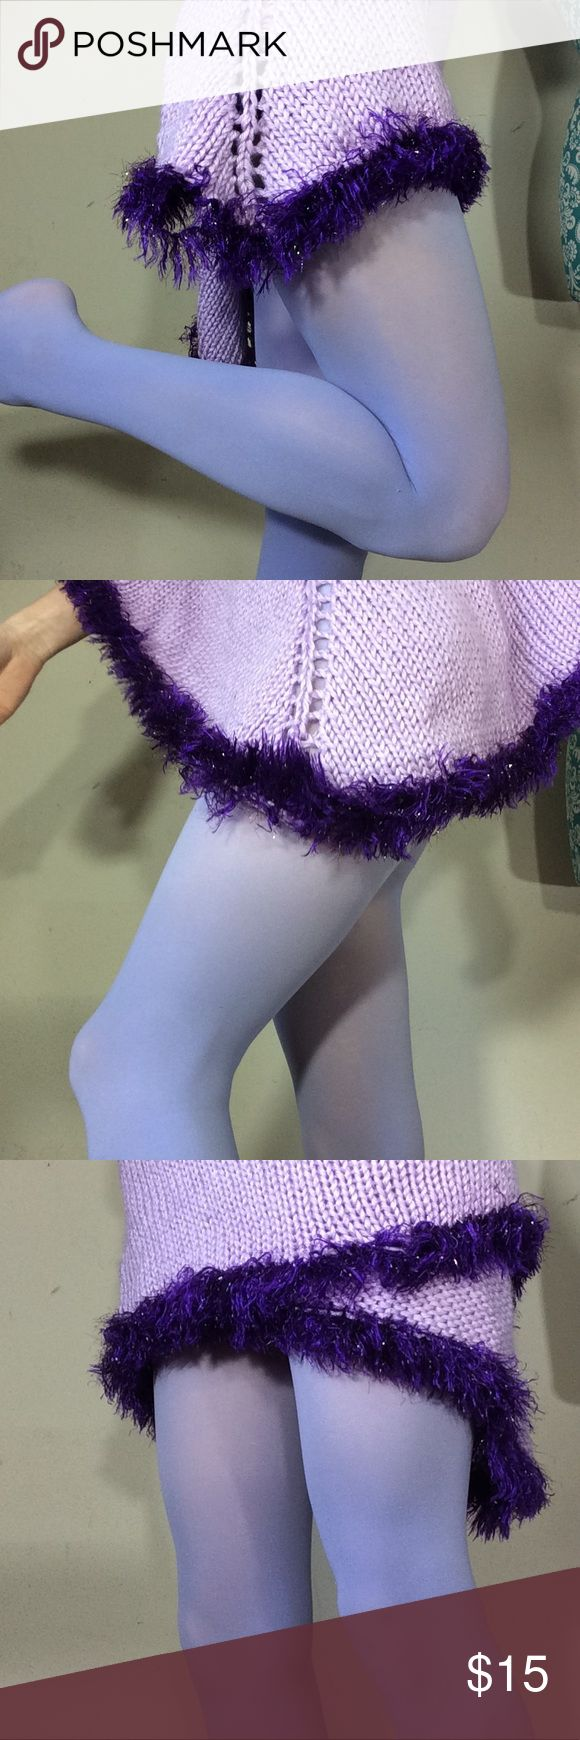 Pale Pastel Lavender Legging Tights Great condition. Smoke free home. One small hole on heel of right foot but doesn't effect and has a lot of wears left. Great for Easter or valentines. Stretchy. Not very sheer. P Hot Topic Accessories Hosiery & Socks